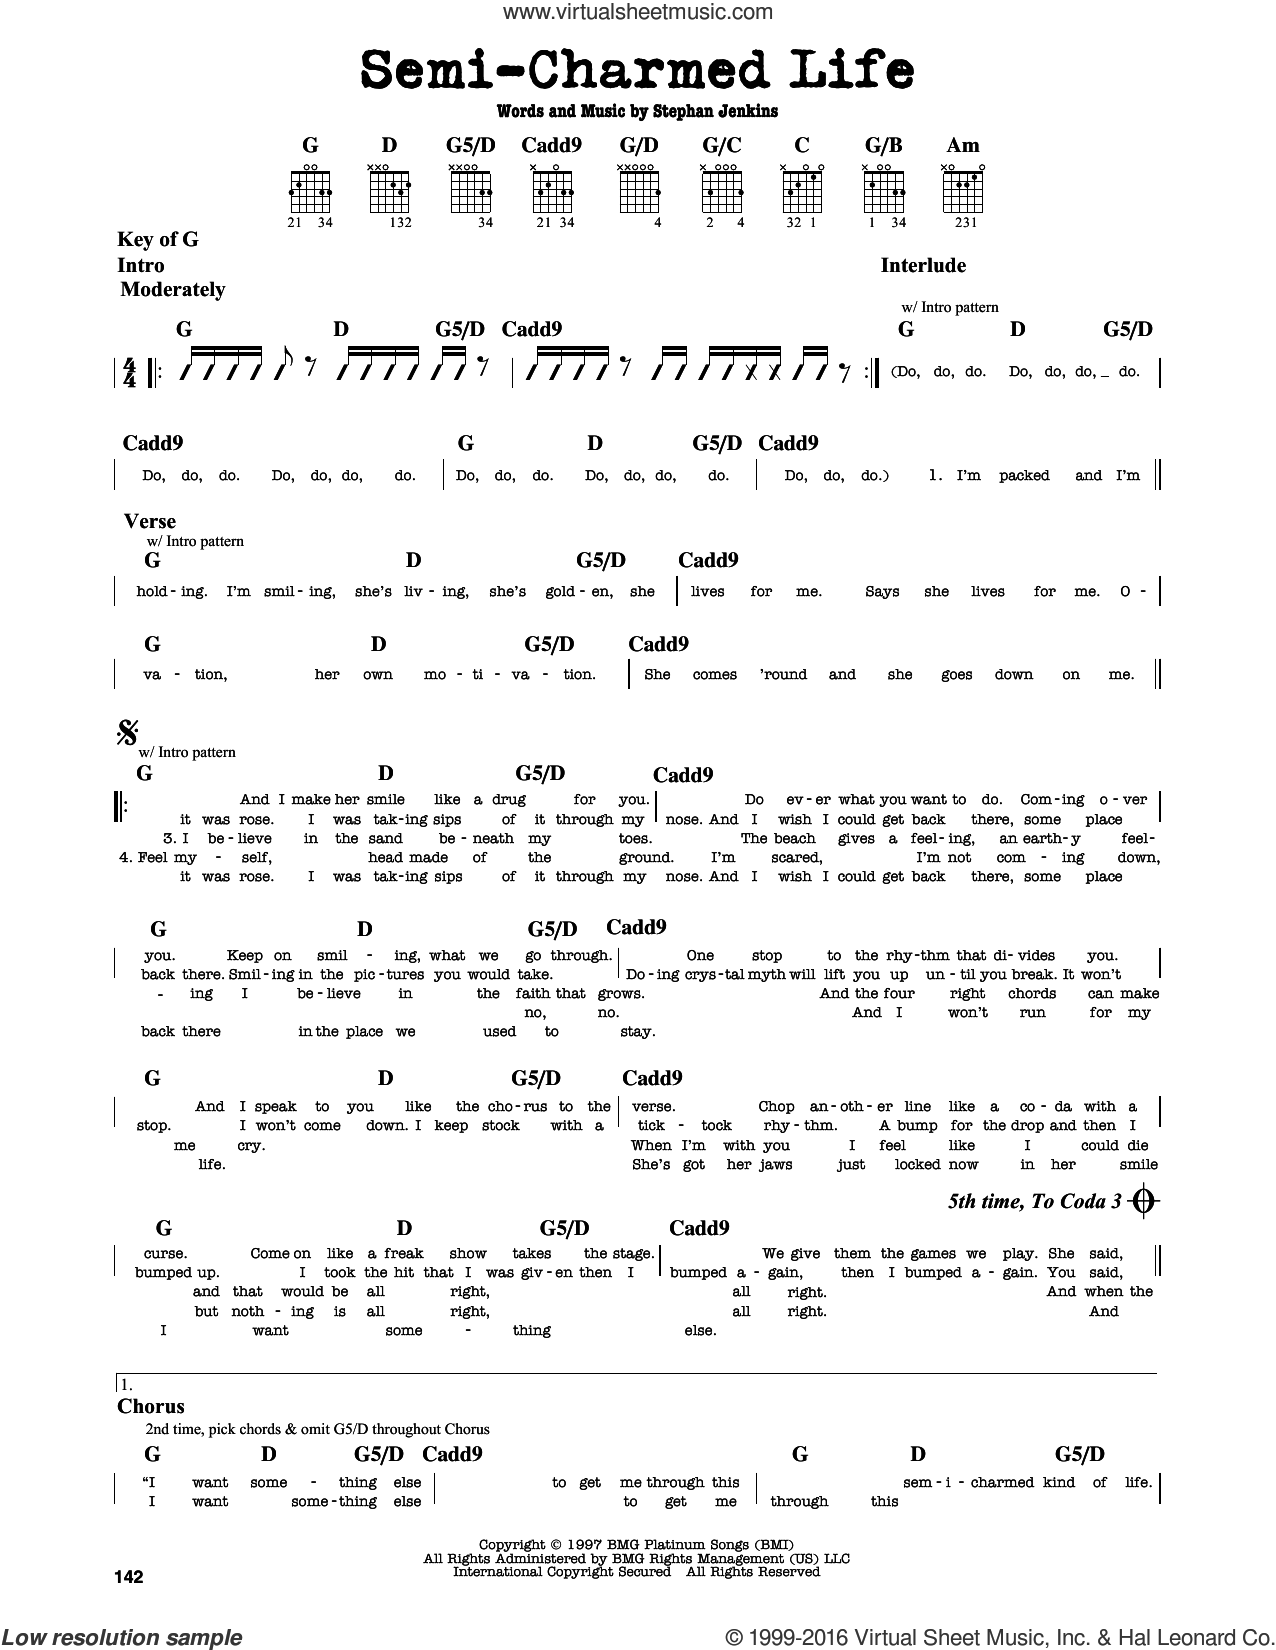 Semi-Charmed Life sheet music for guitar solo (lead sheet) by Stephan Jenkins and Third Eye Blind. Score Image Preview.